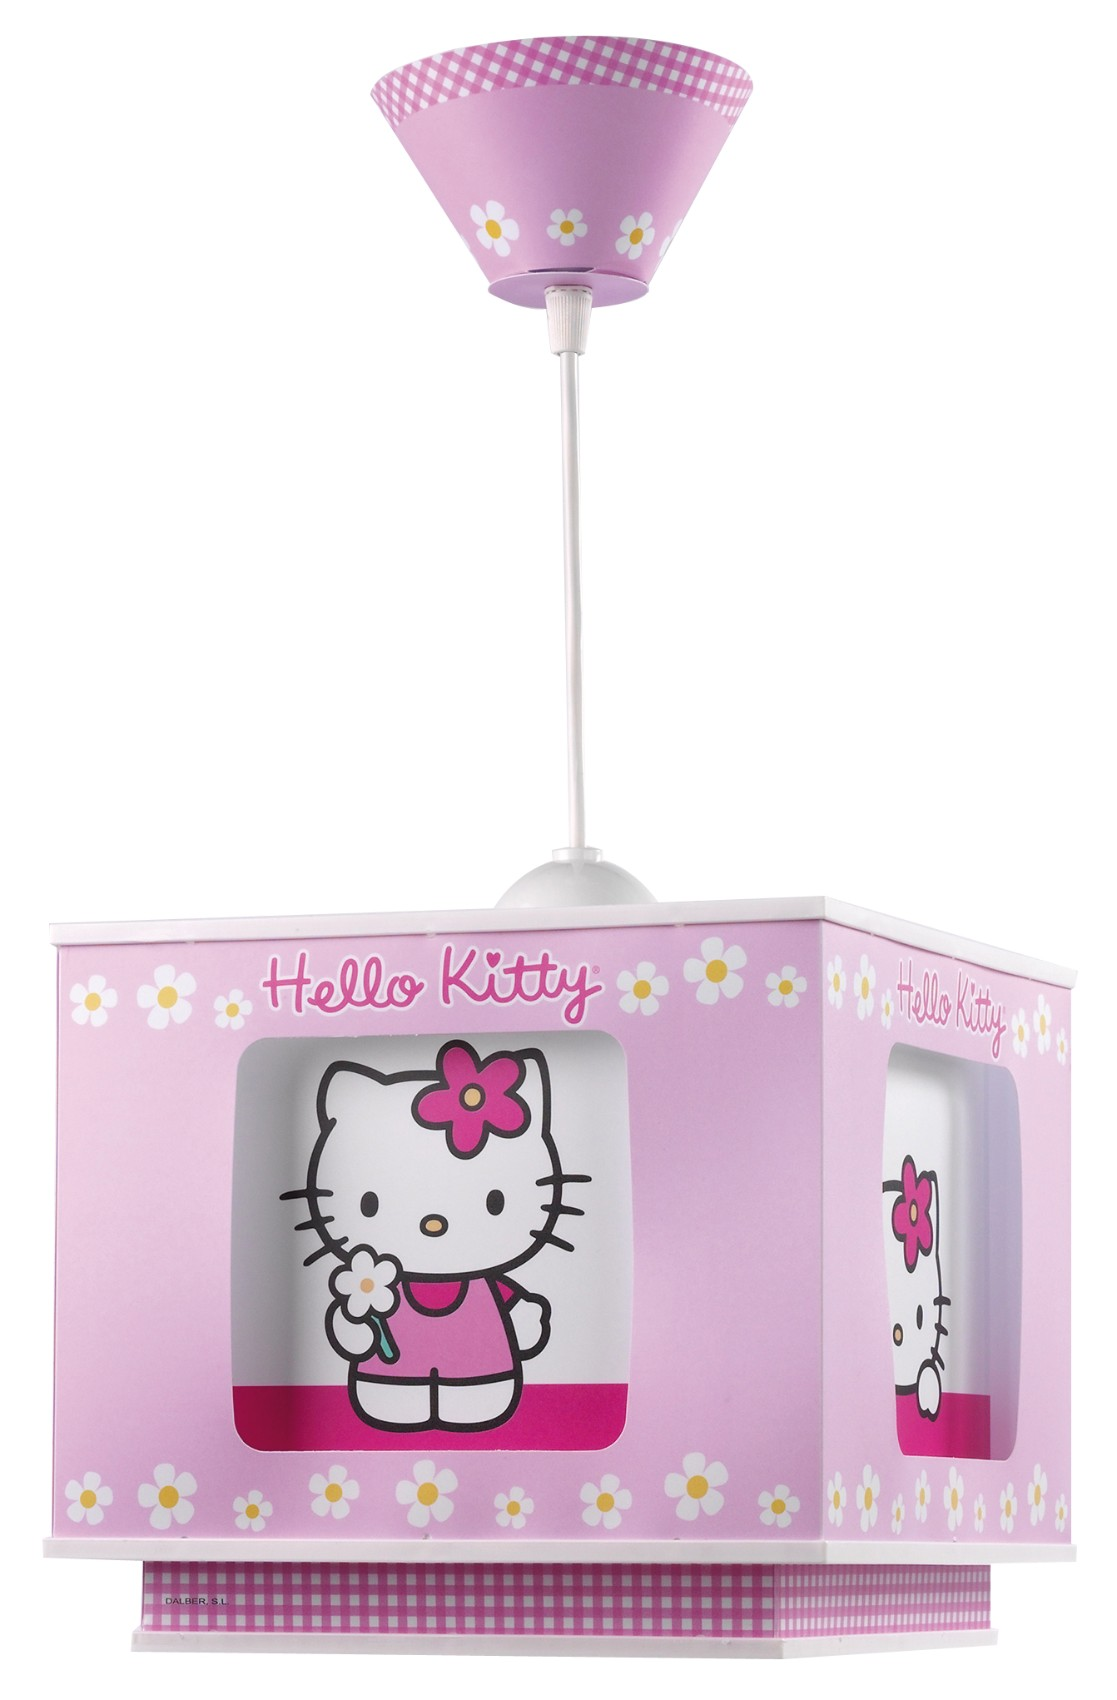 luminaire hello kitty luminaire hello kitty chambre d 39 enfant lustre enfant. Black Bedroom Furniture Sets. Home Design Ideas